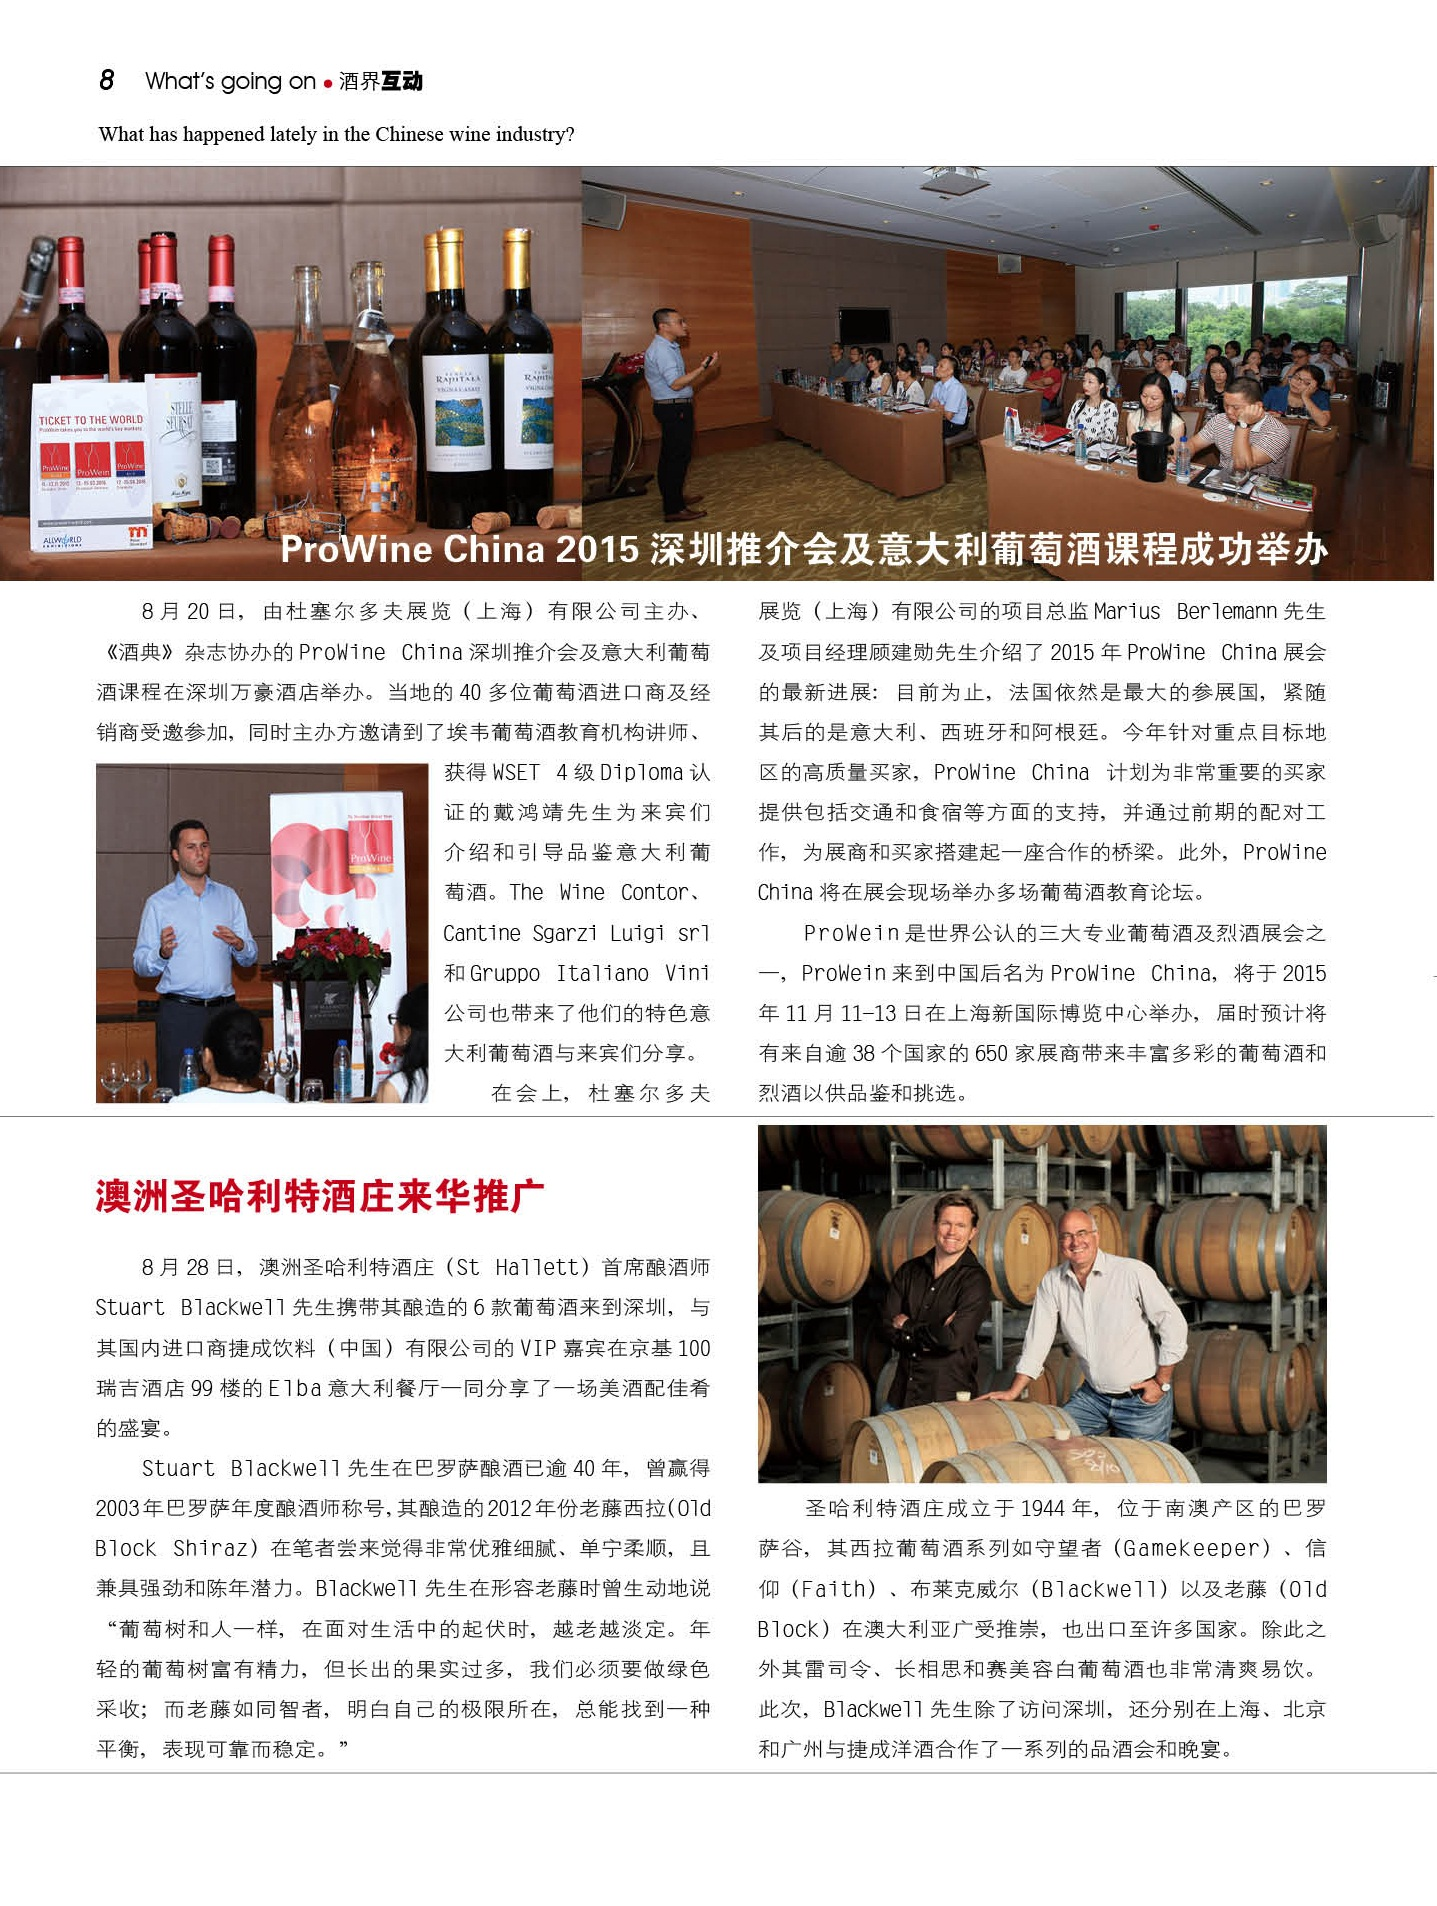 prowine fine wine and liquor cooperation 201508-4